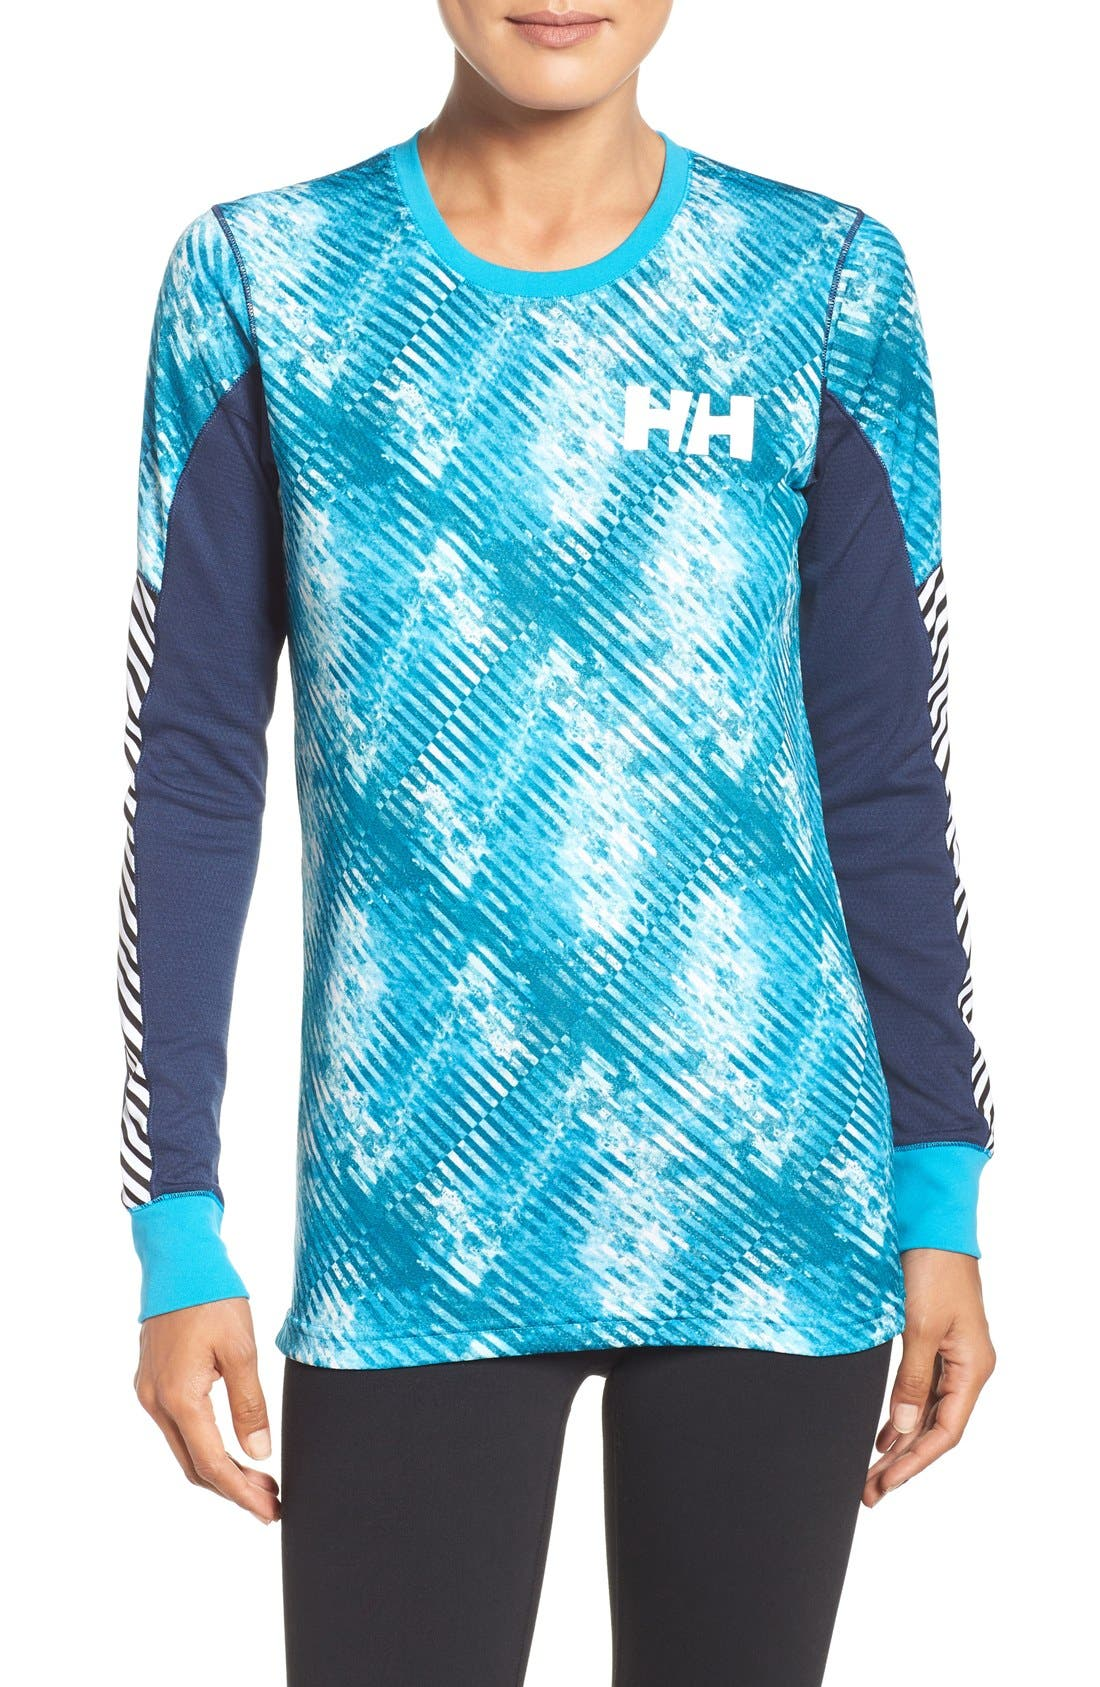 Active Flow Graphic Top,                             Main thumbnail 1, color,                             Winter Aqua